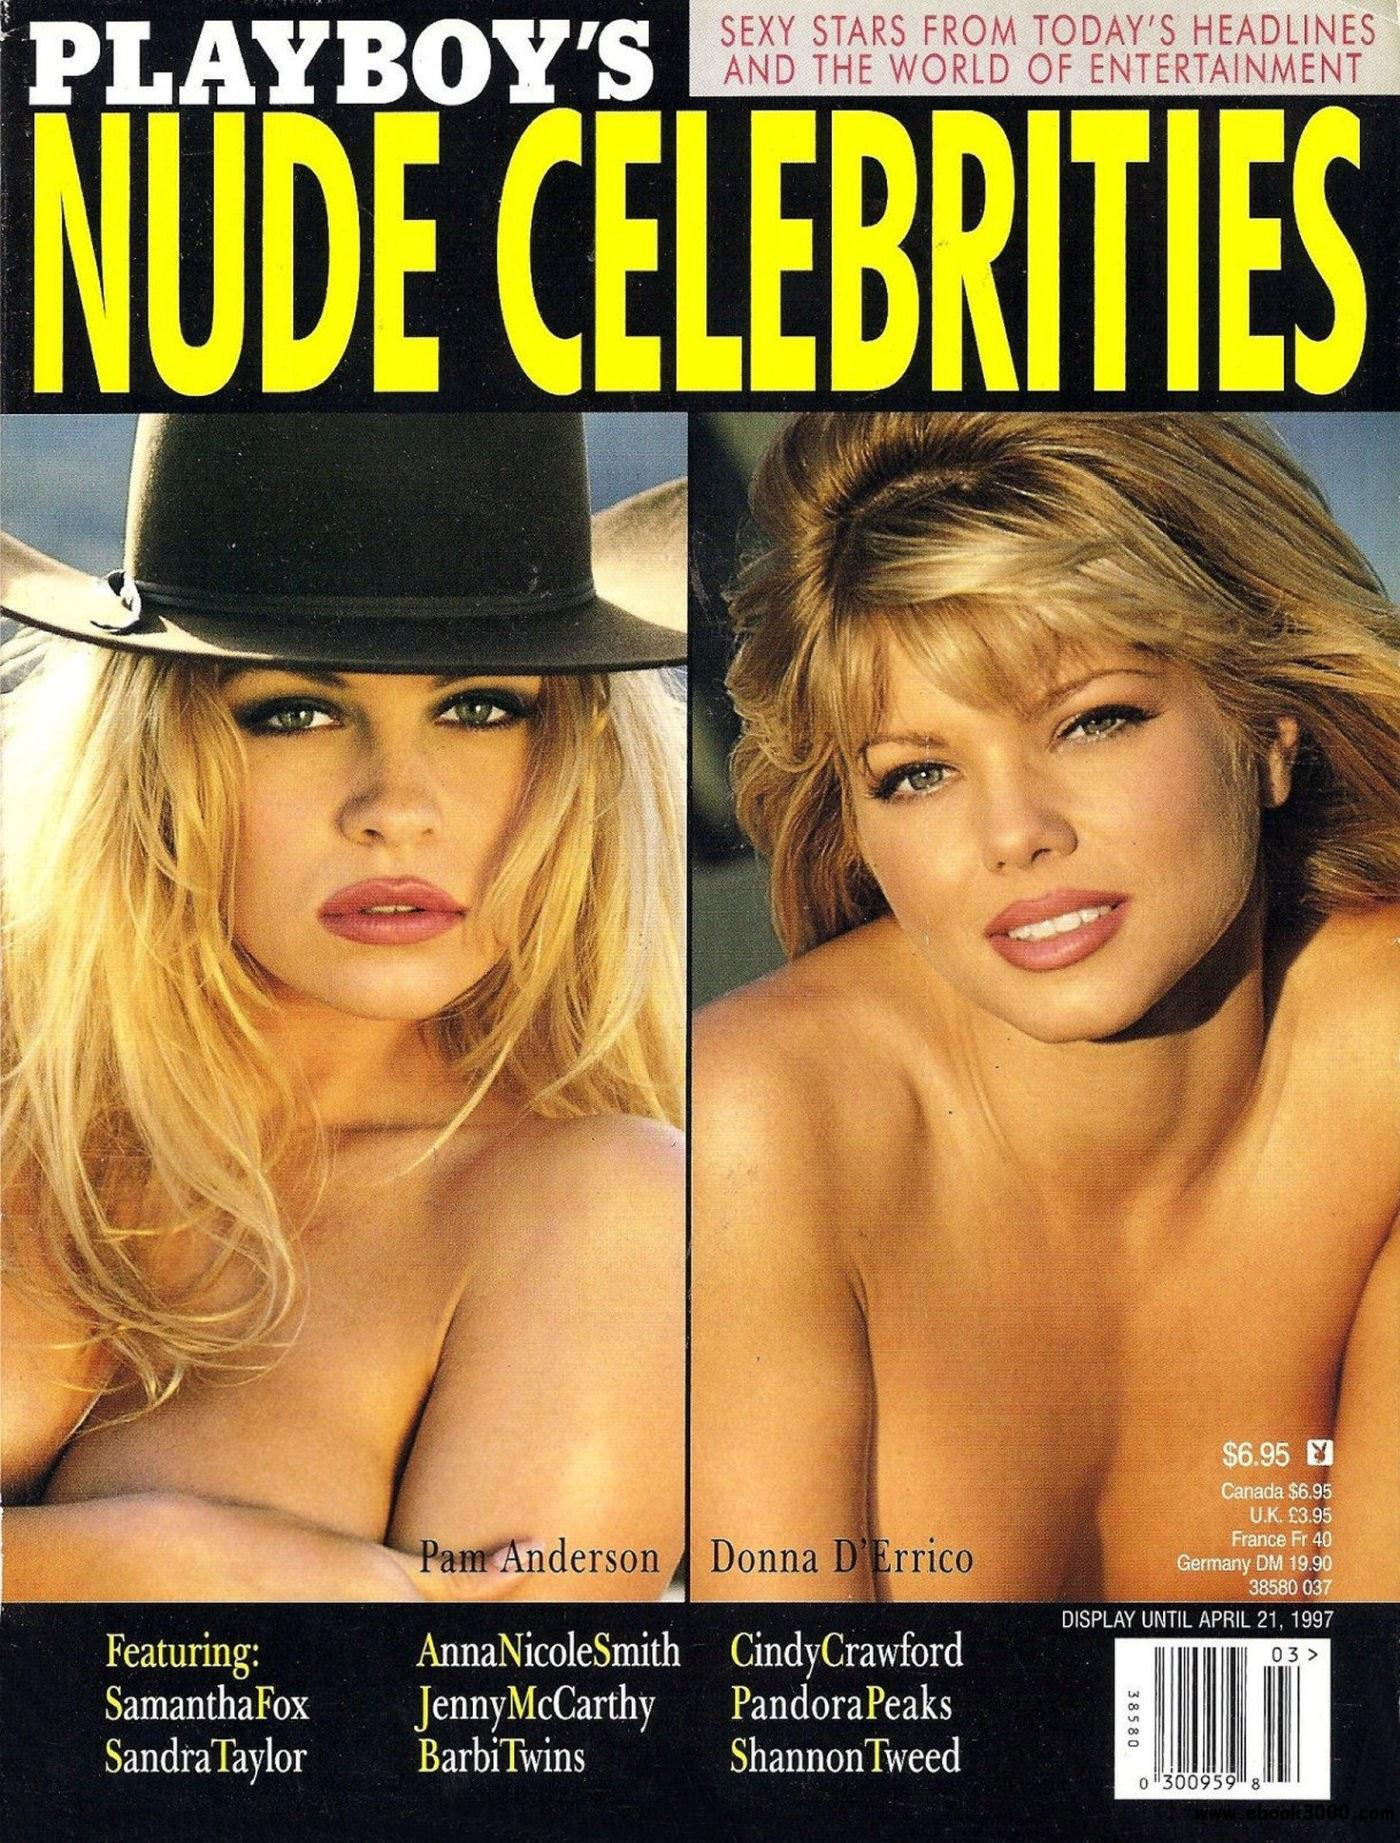 Playboy's Nudes Celebrities 1997 free download